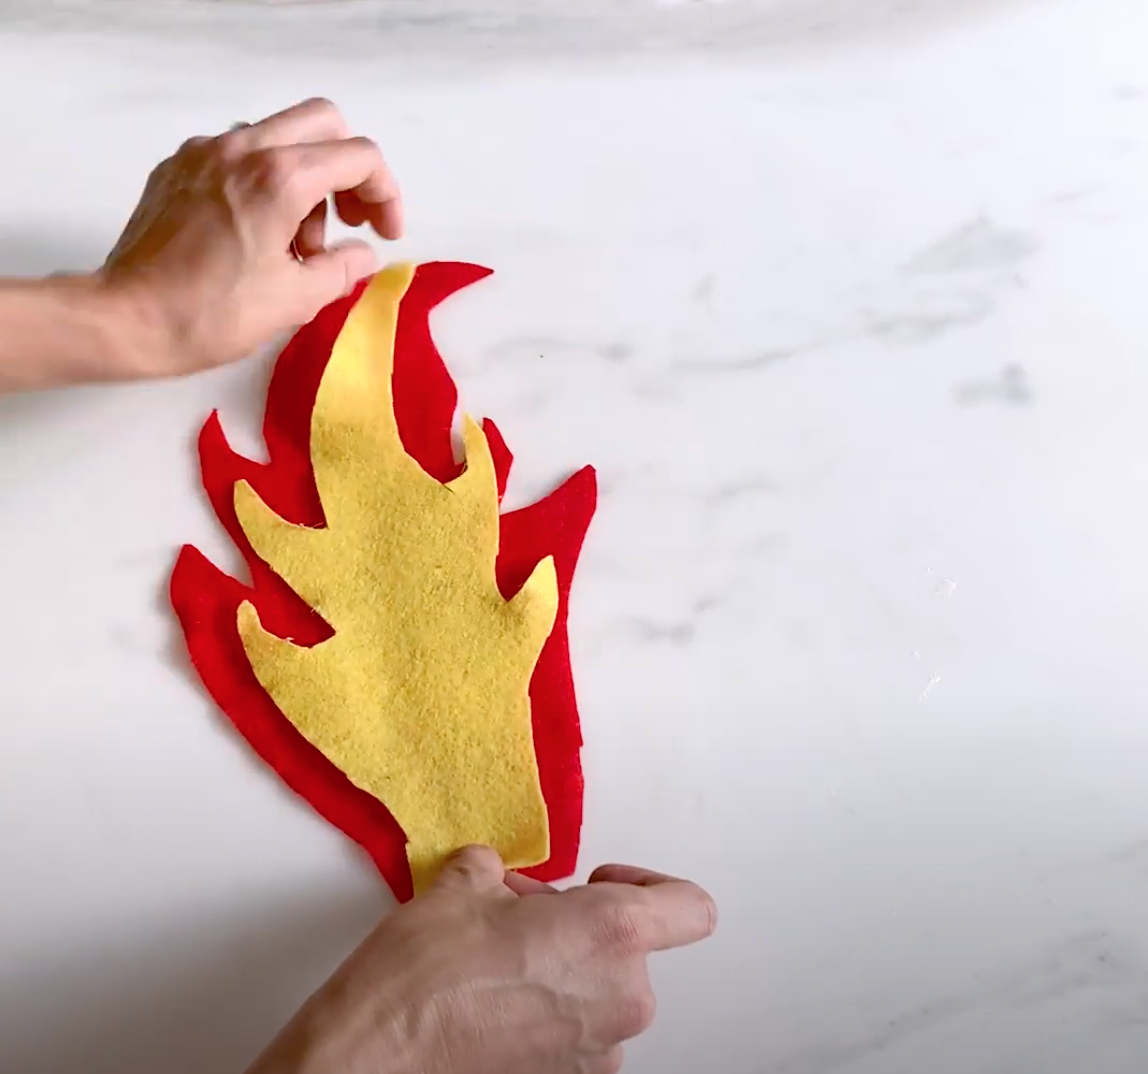 Cut out and glue flames